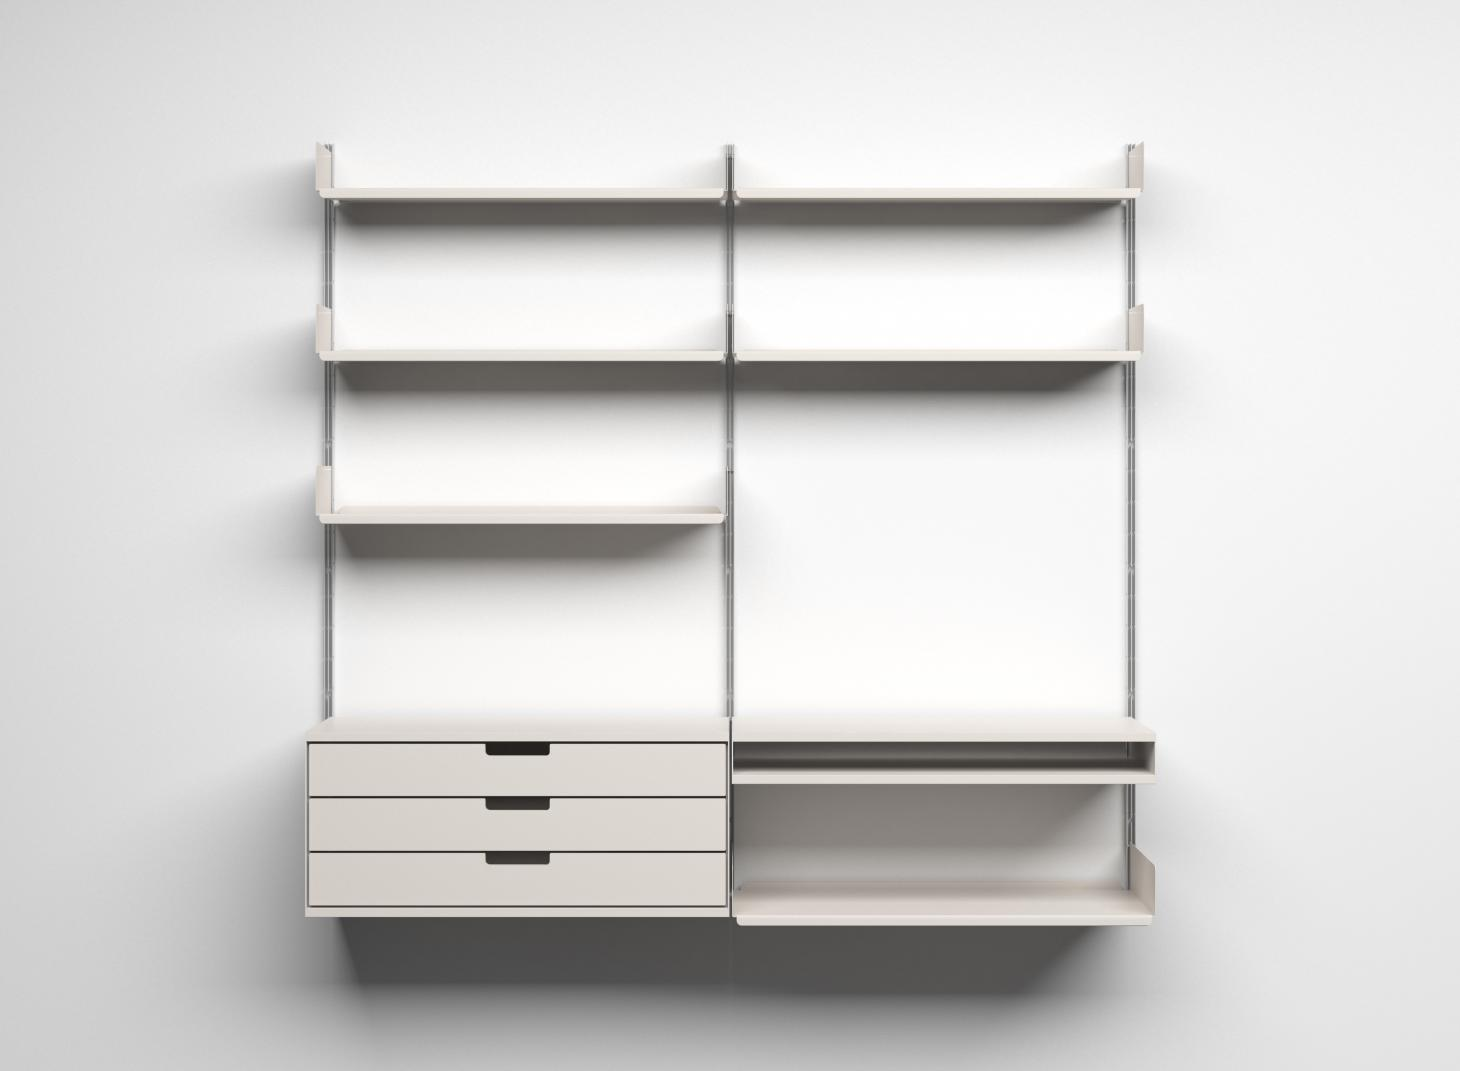 Empty Vitsoe shelving system by Dieter Rams on white wall